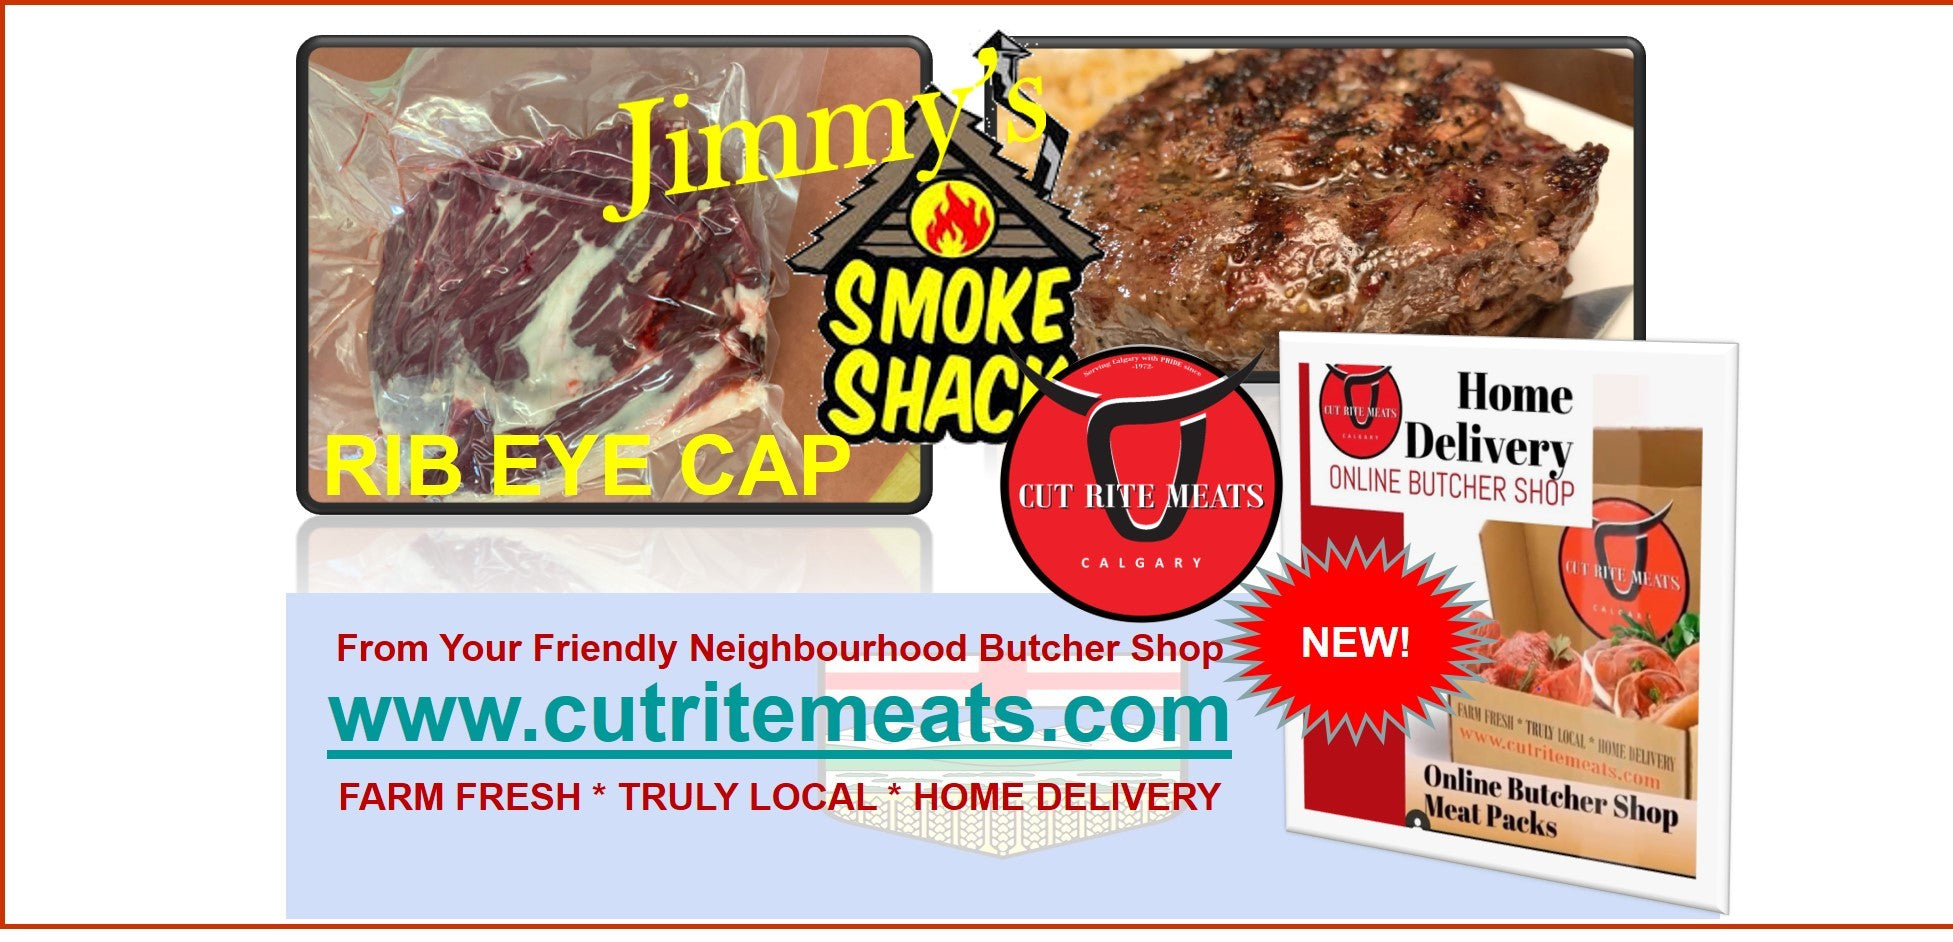 Beef Rib Eye Cap from Cut Rite Meats is so delicious and amazing to really make your meal special tonight.